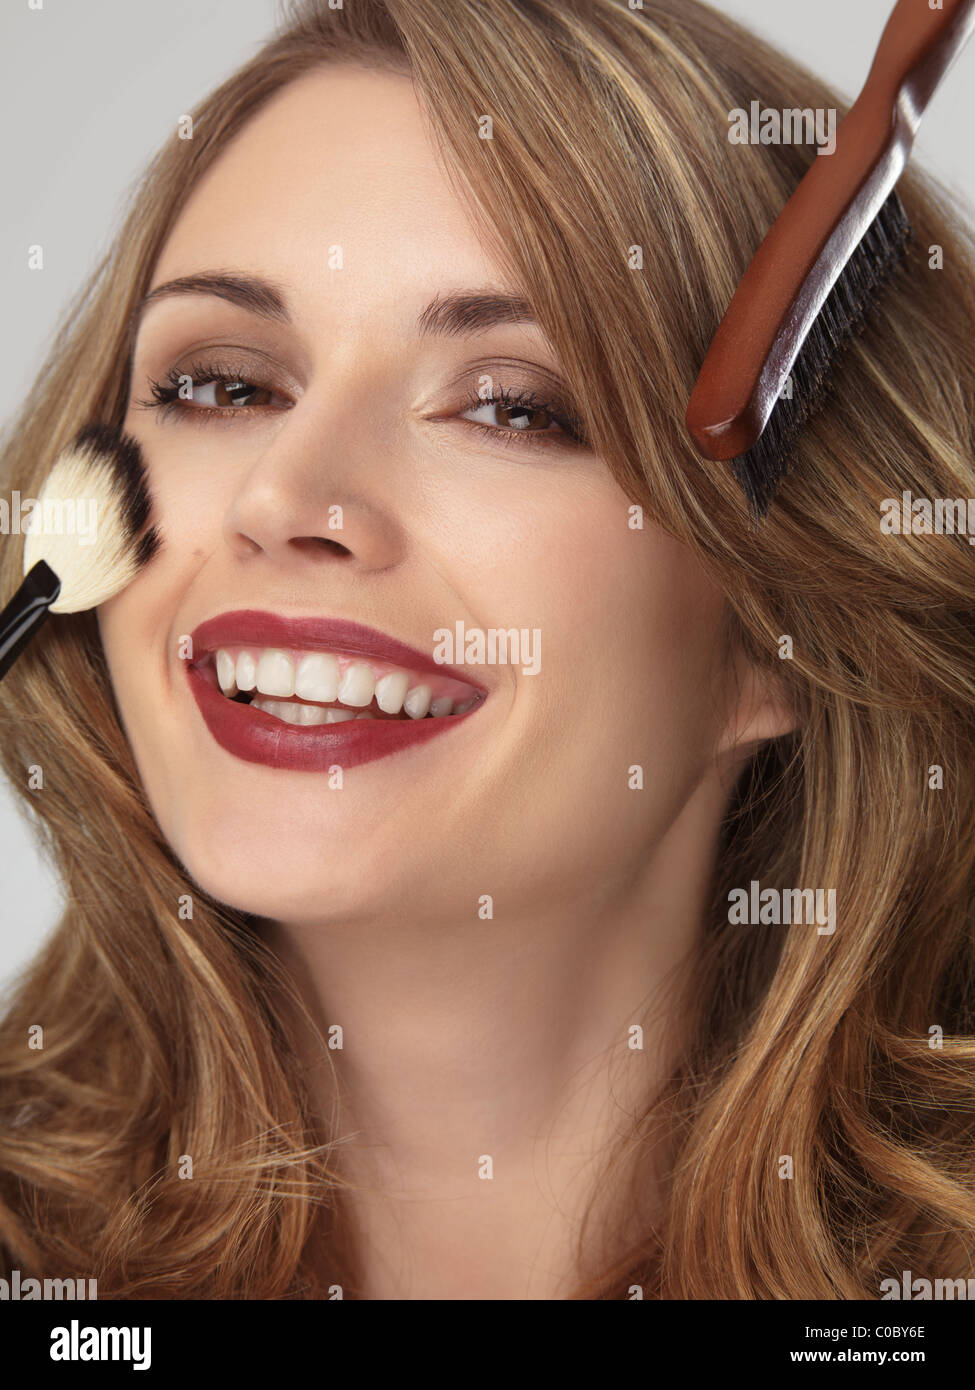 Portrait of a beautiful smiling young woman with her hair and makeup being done - Stock Image